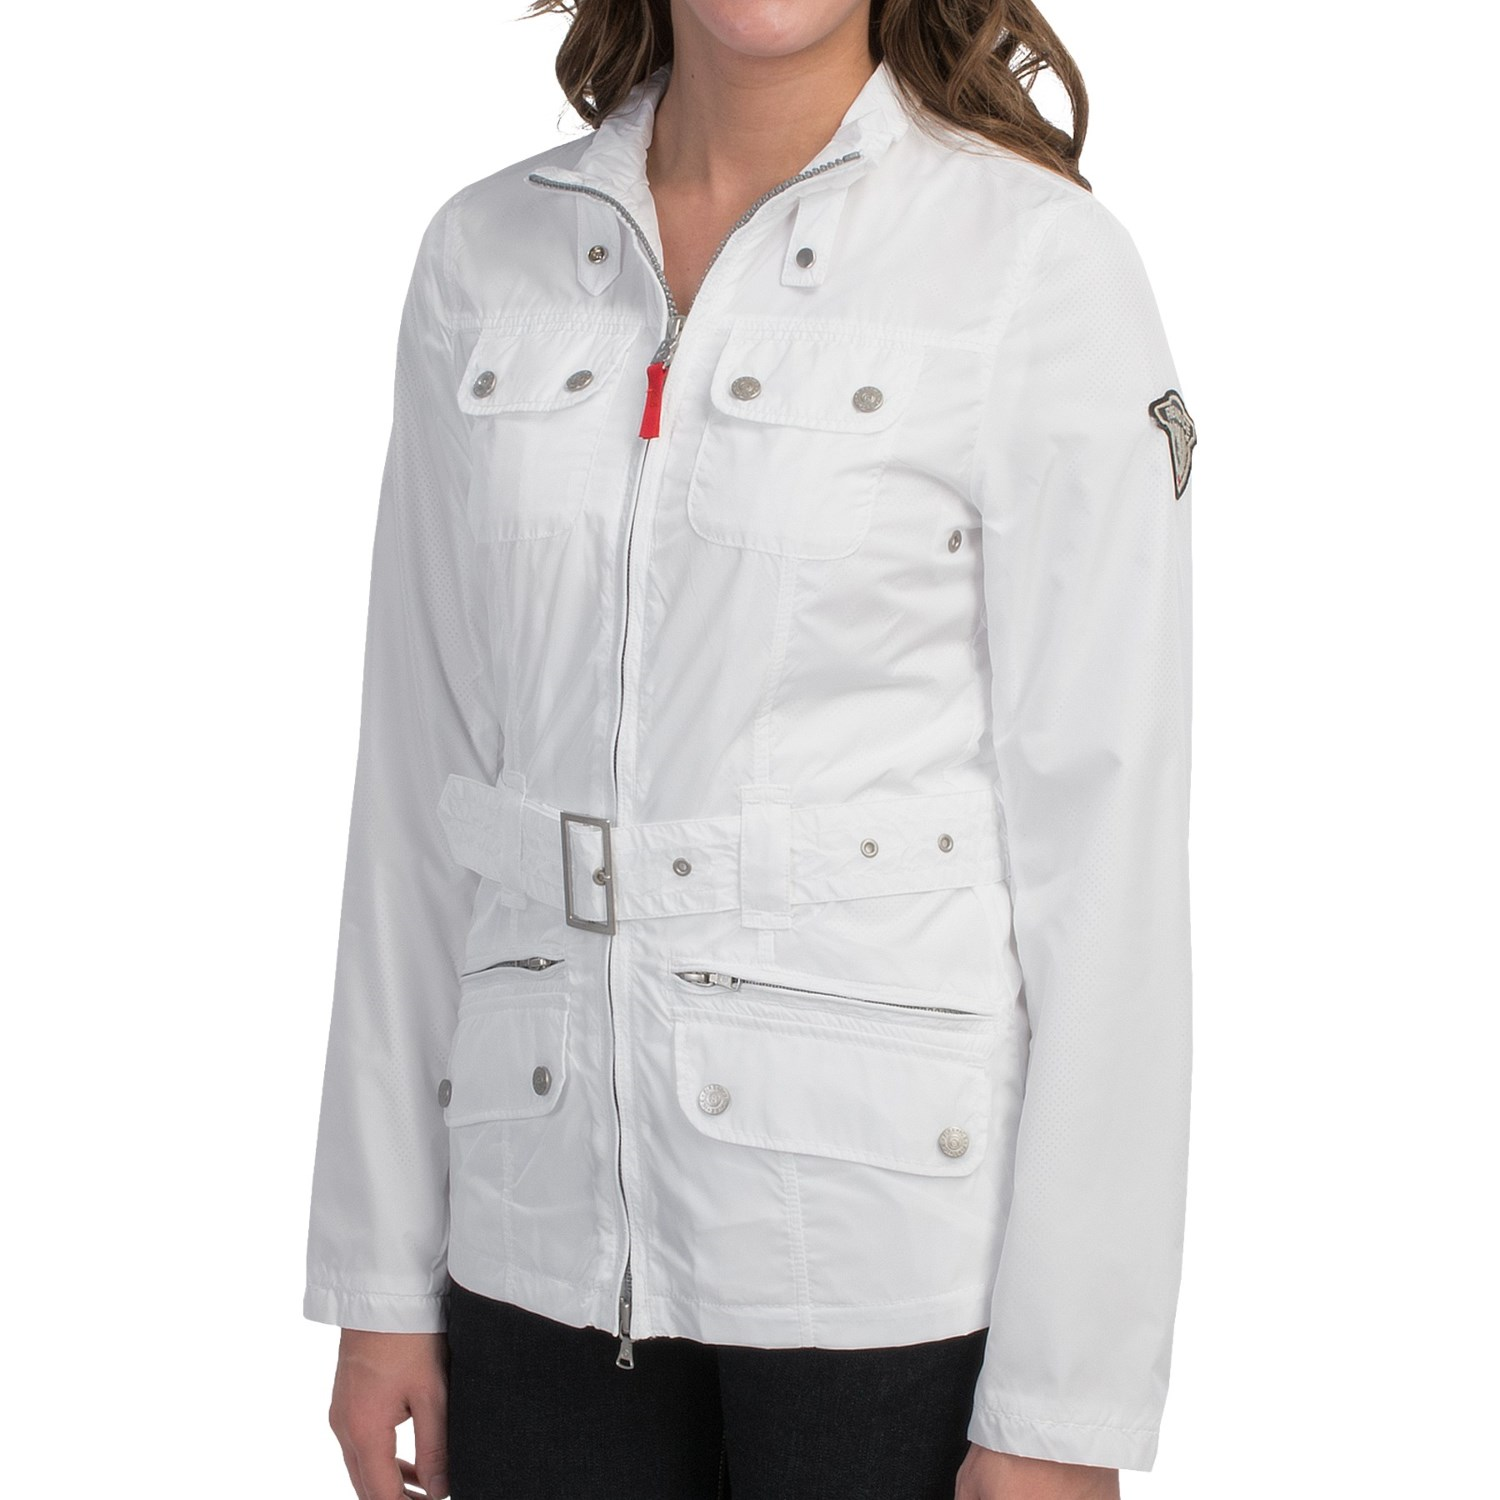 bogner fire and ice ava nylon jacket for women in white p 8259a 02. Black Bedroom Furniture Sets. Home Design Ideas